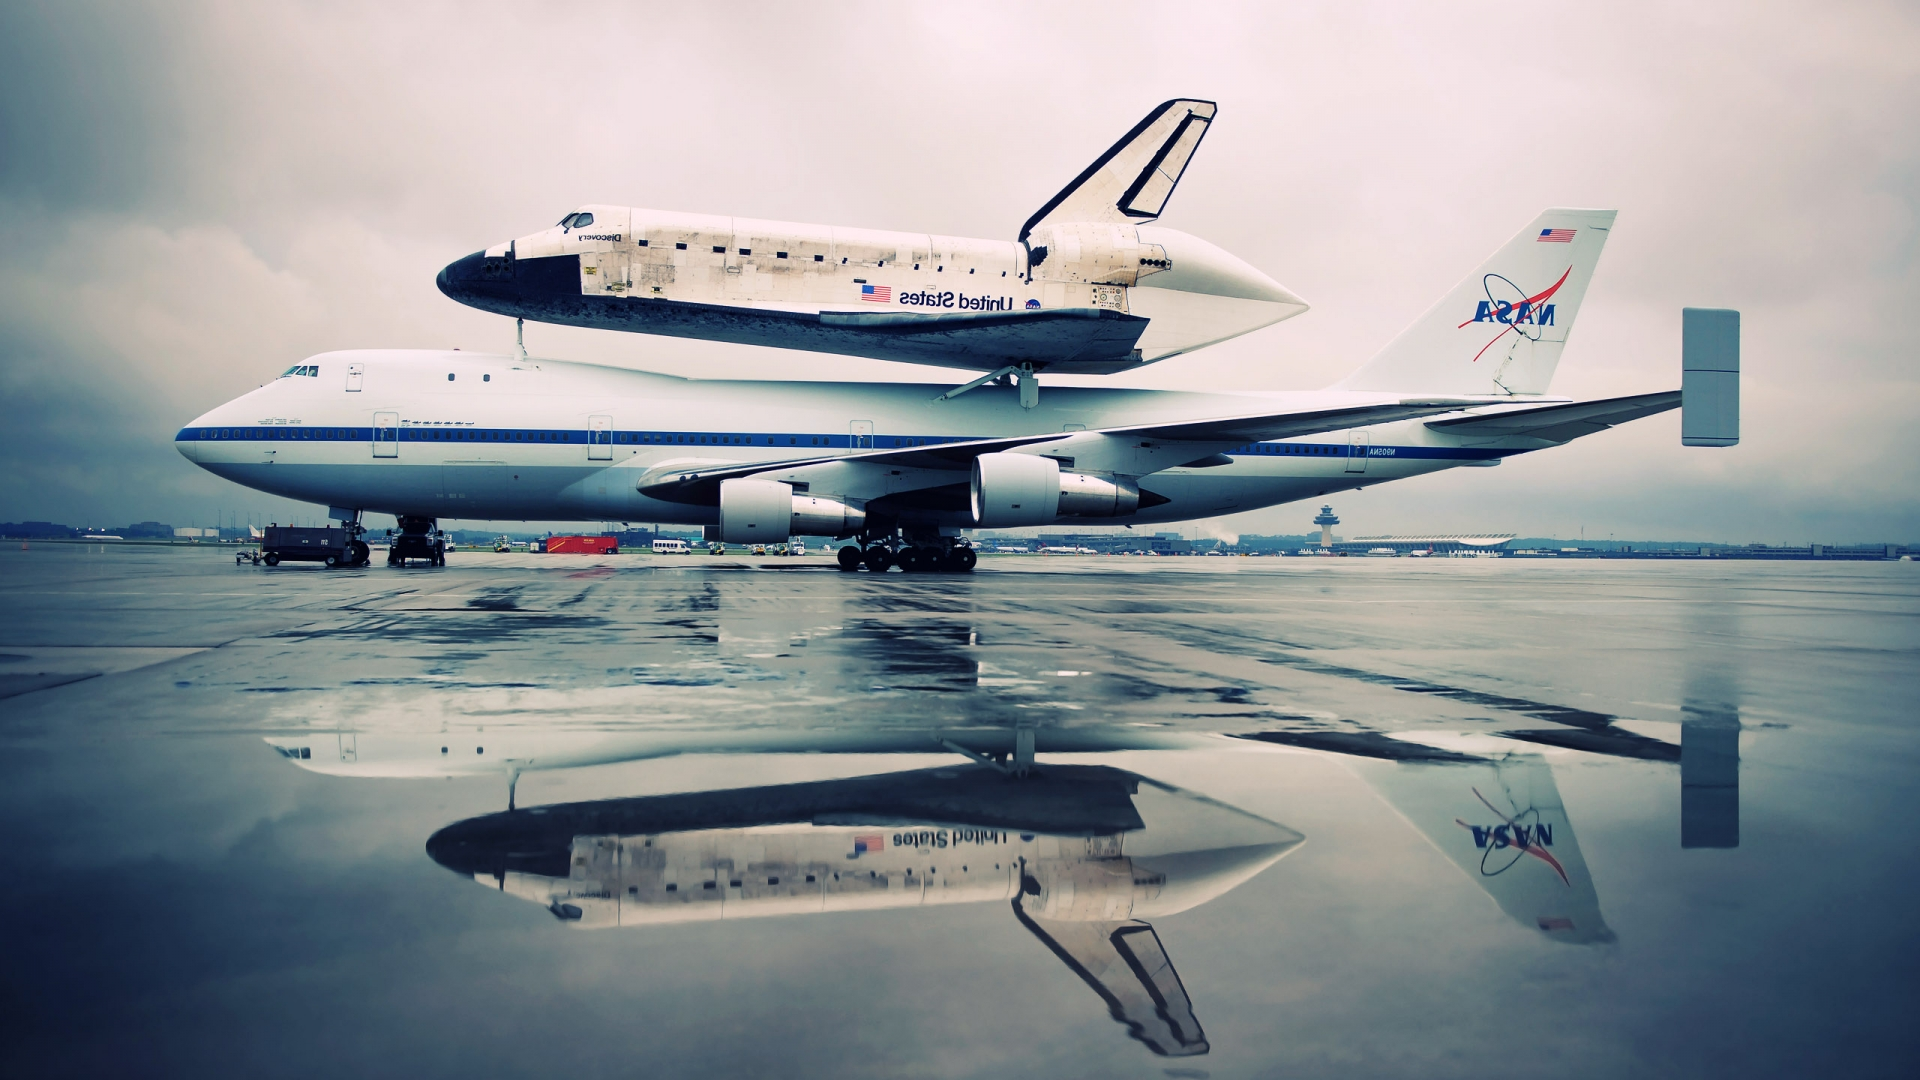 Discovery Wallpapers In Hd Wallpaper Space Shuttle